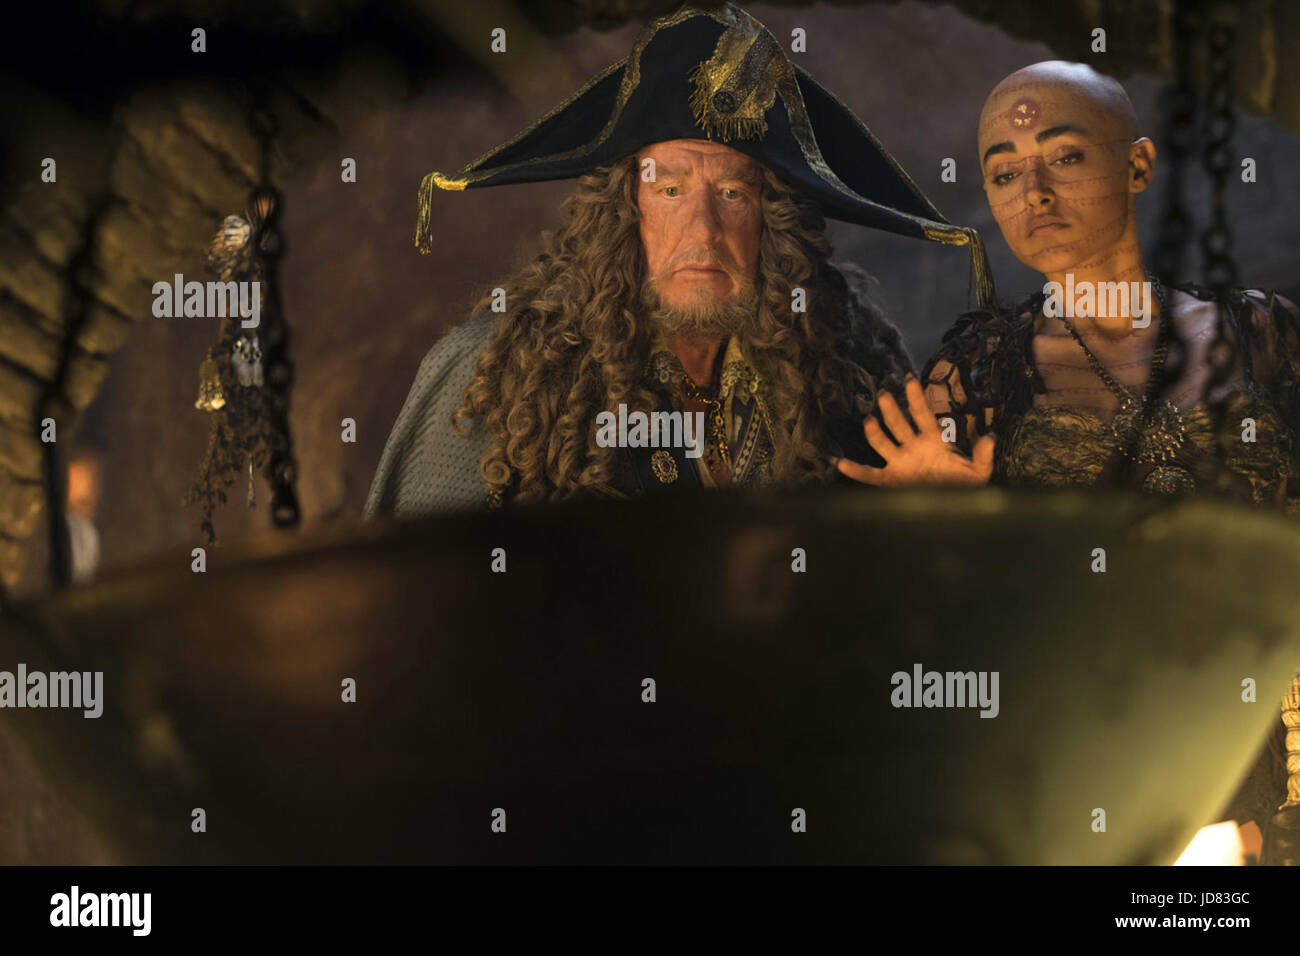 Pirates Of The Caribbean Dead Men Tell No Tales Also Known